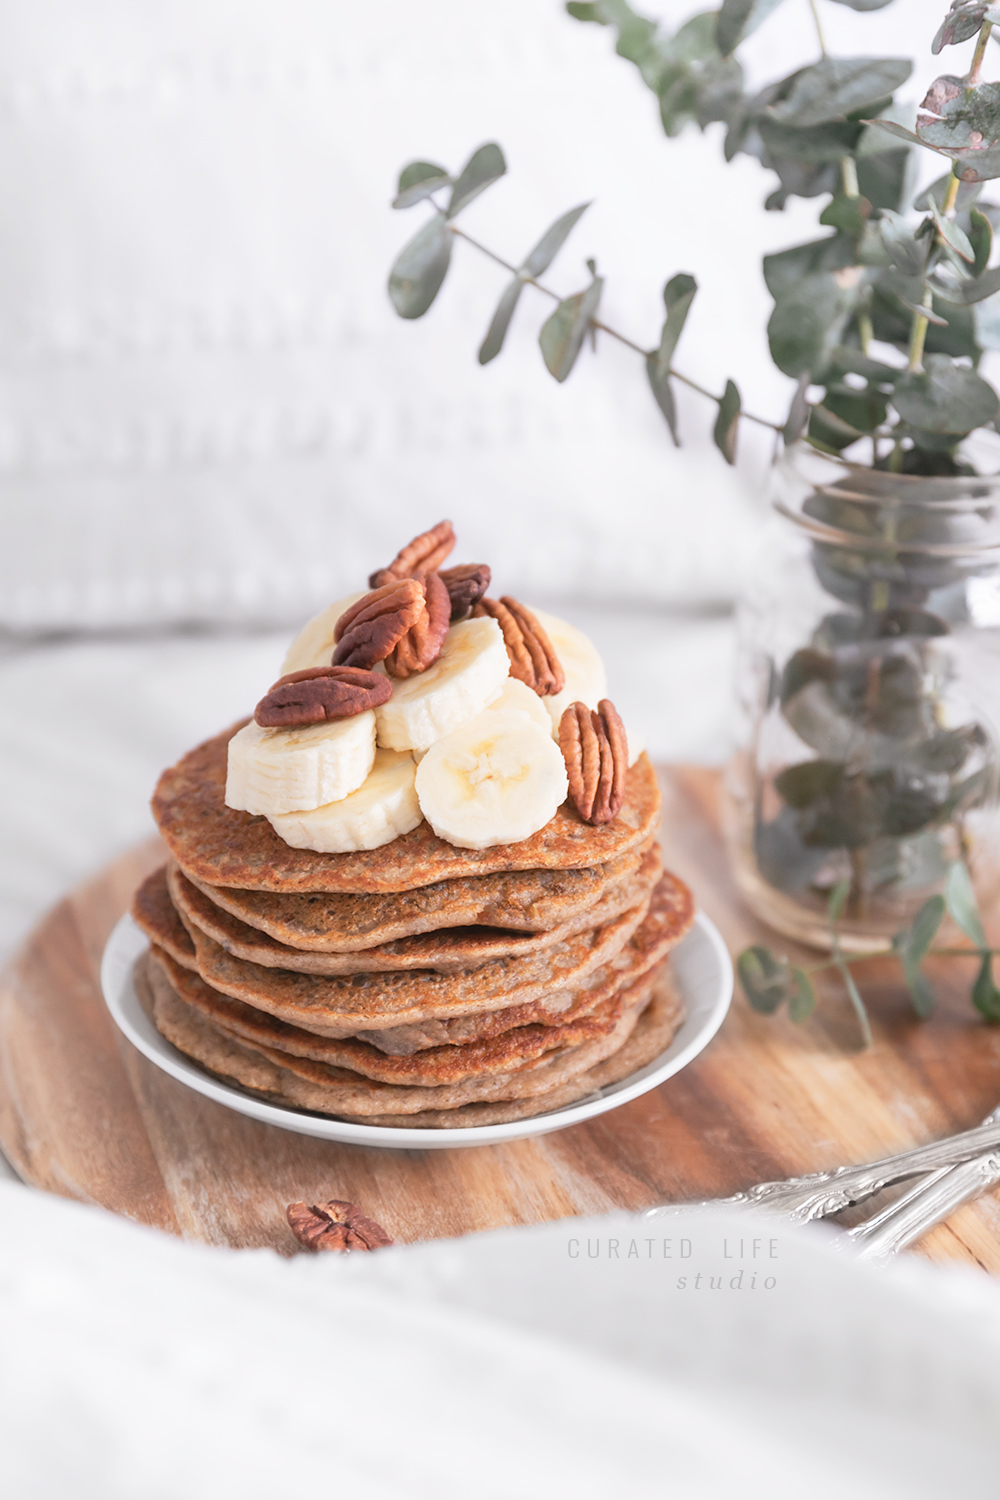 A stack of banana pancakes presented on a rustic wooden tray beside antique silver cutlery.